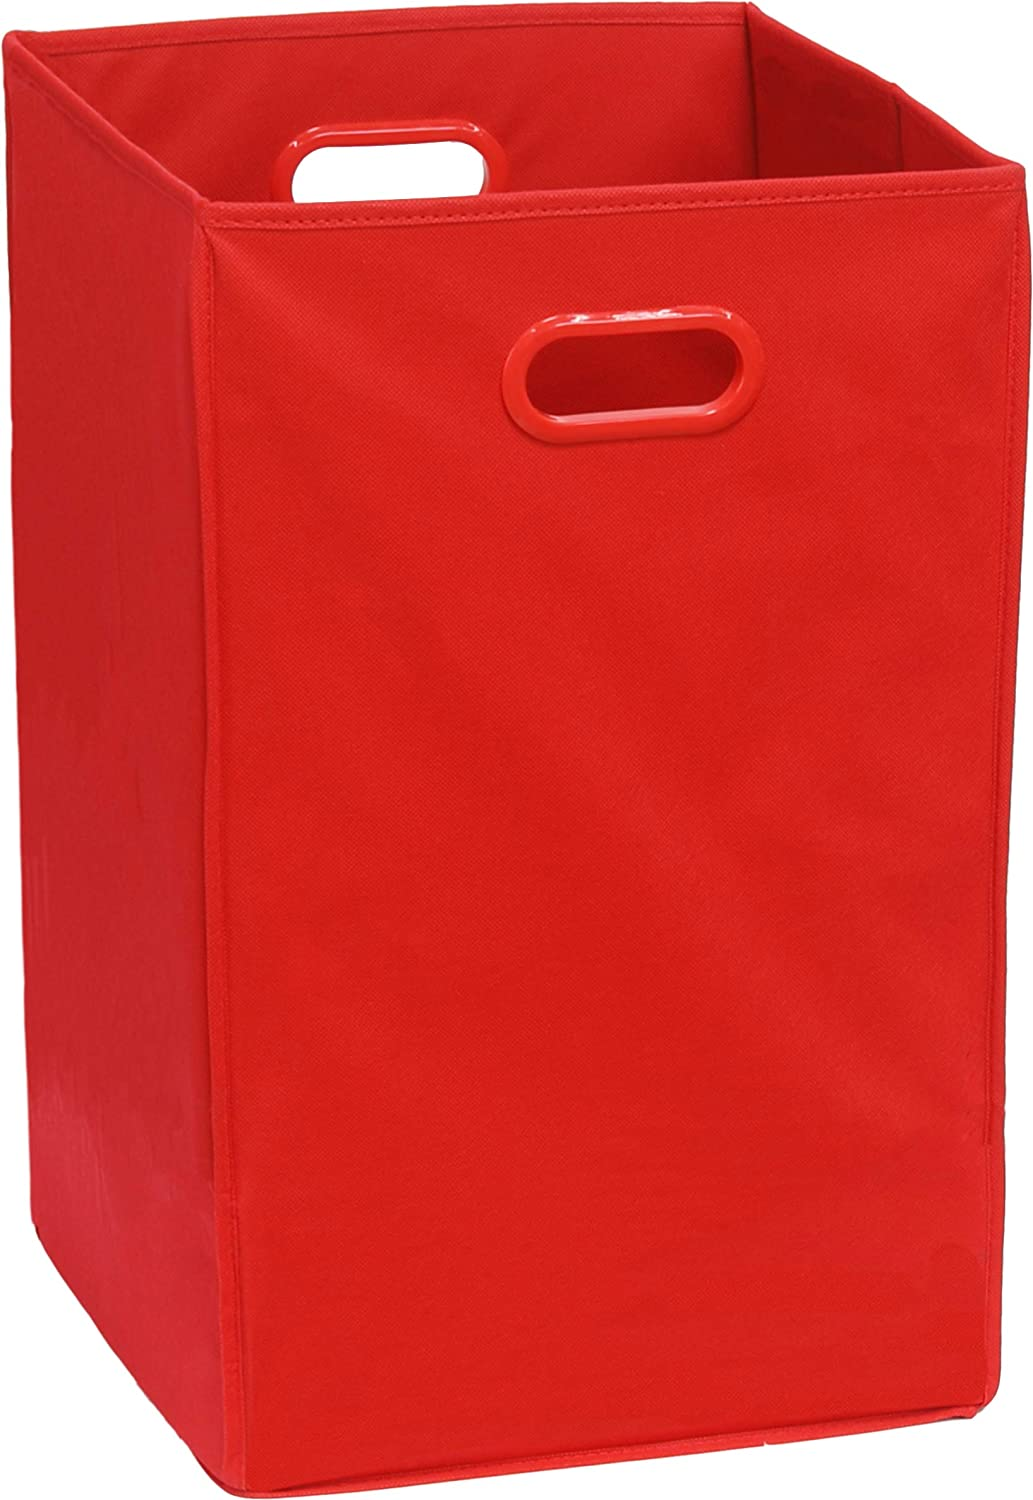 Simple Houseware Foldable Closet Laundry Hamper, Red